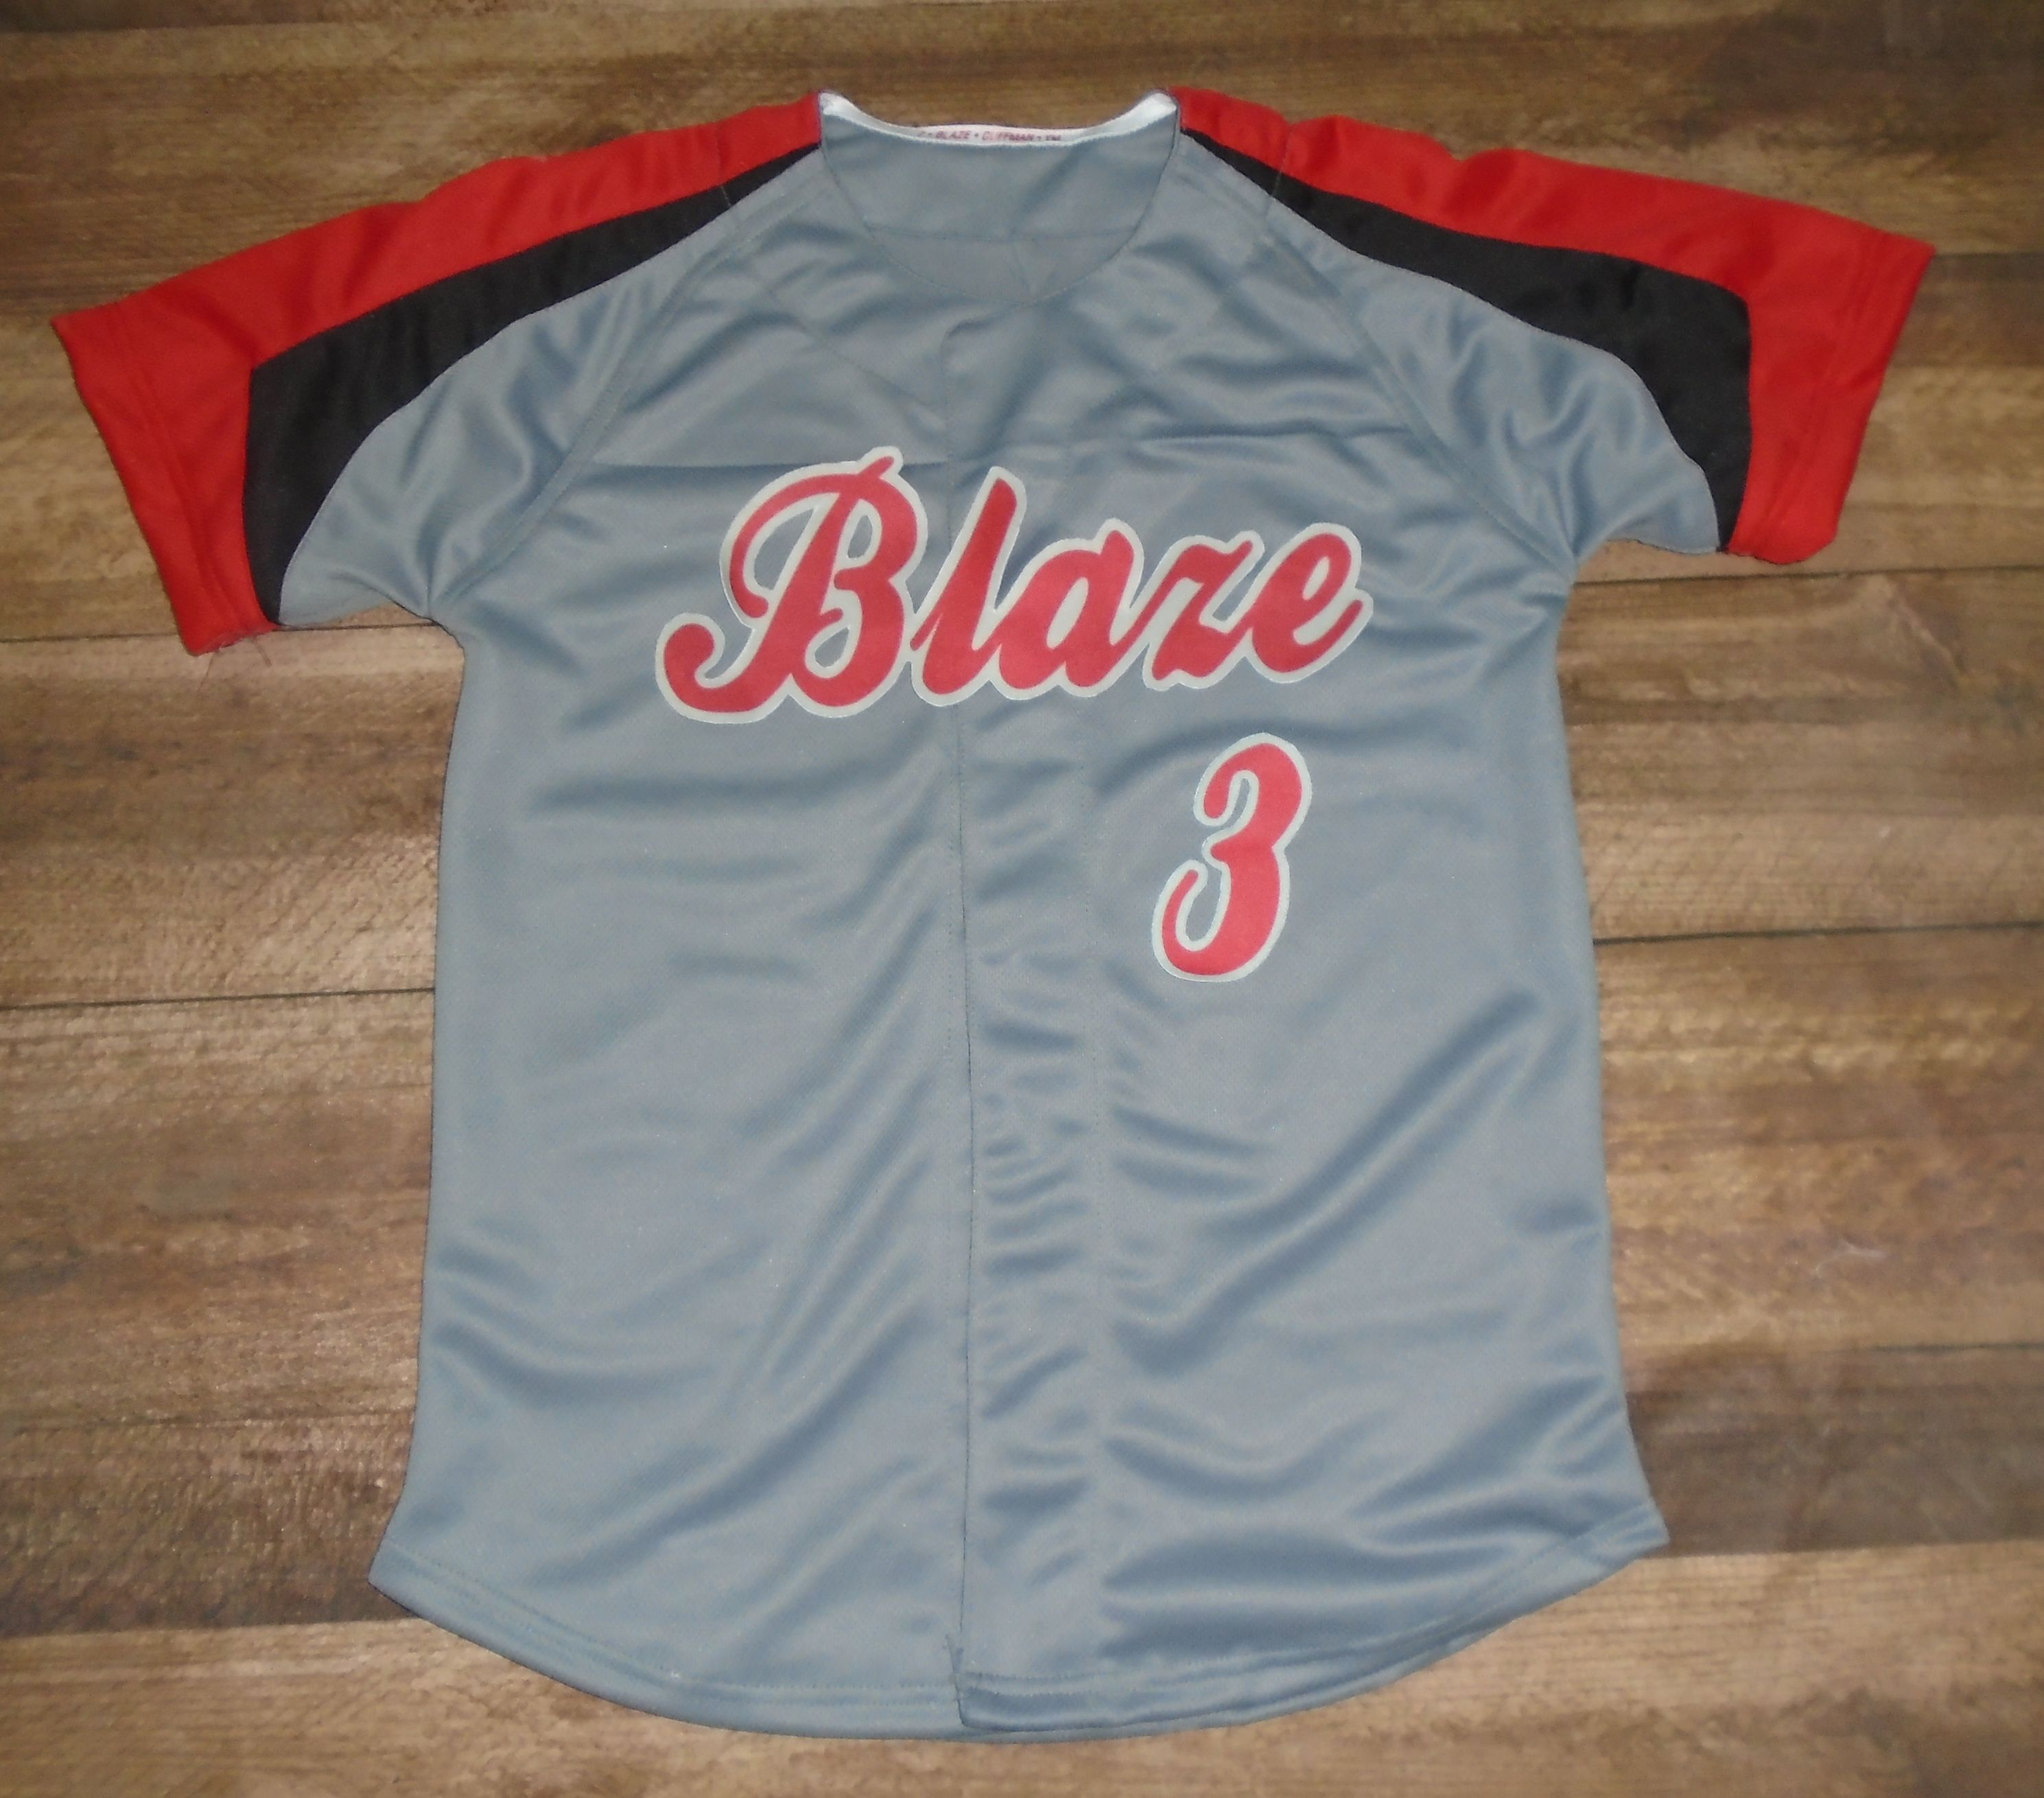 7bdff2ca4 Take a look at these custom jerseys designed by Blaze Baseball and created  at Team Sports Inc in Holland